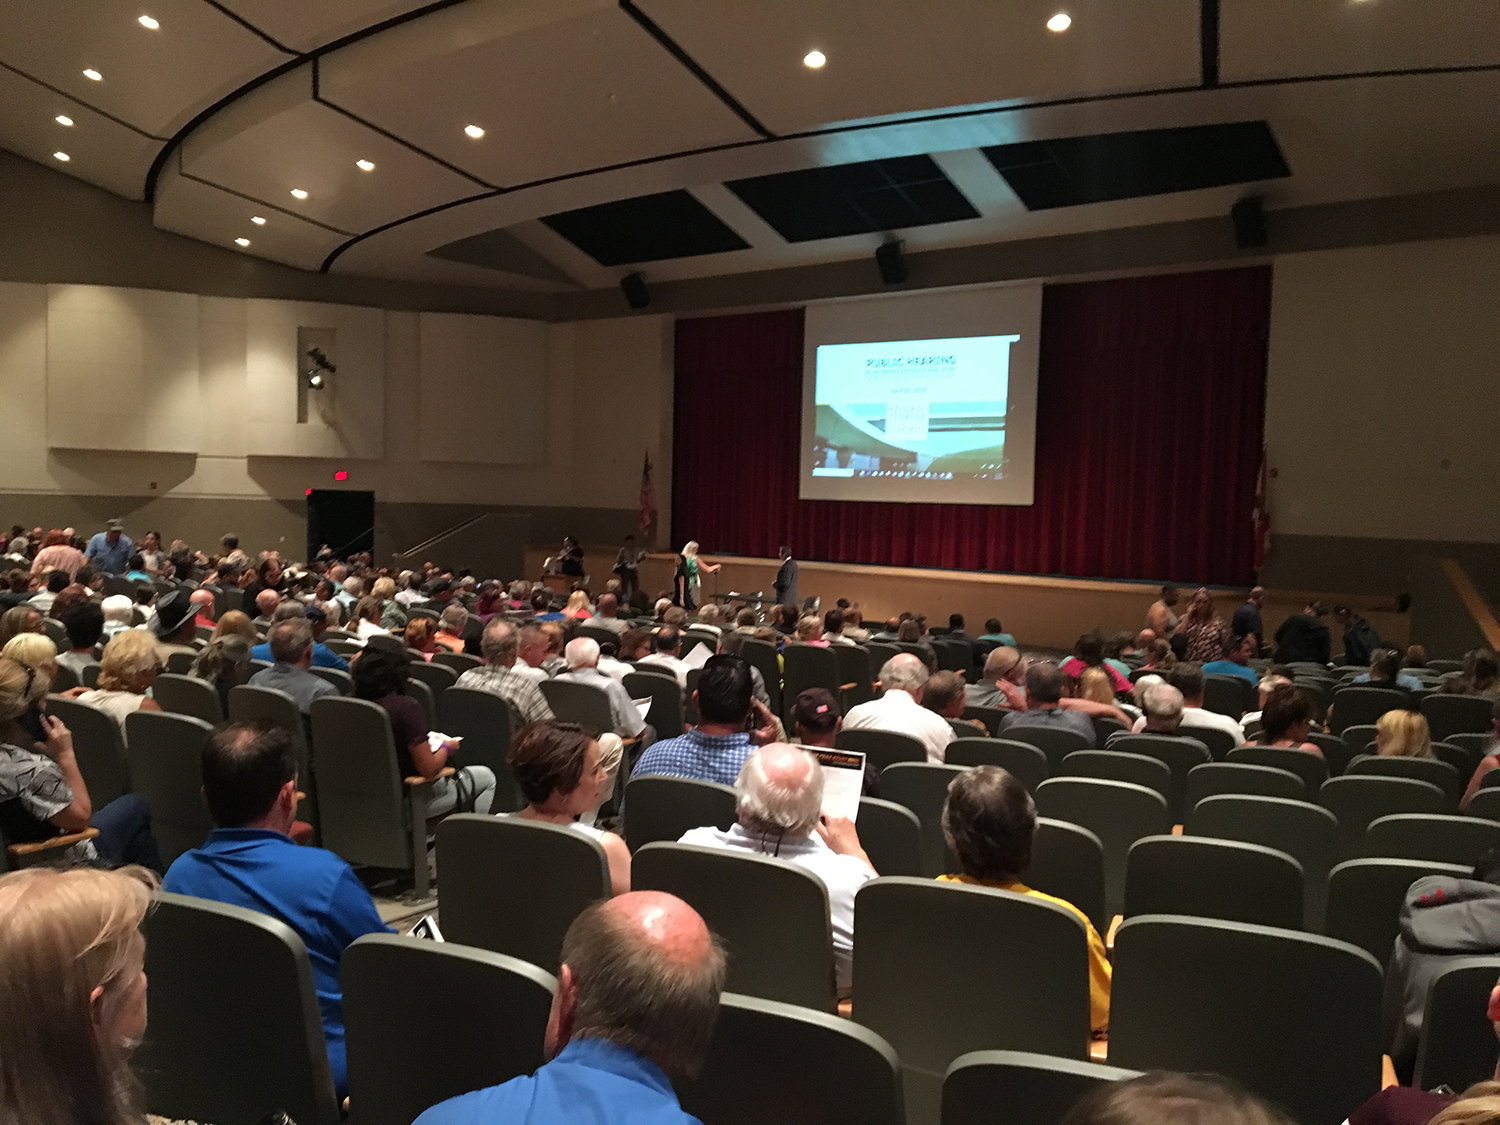 Citizens attend a public meeting regarding the PD&E study of State Road 408 Eastern Extension